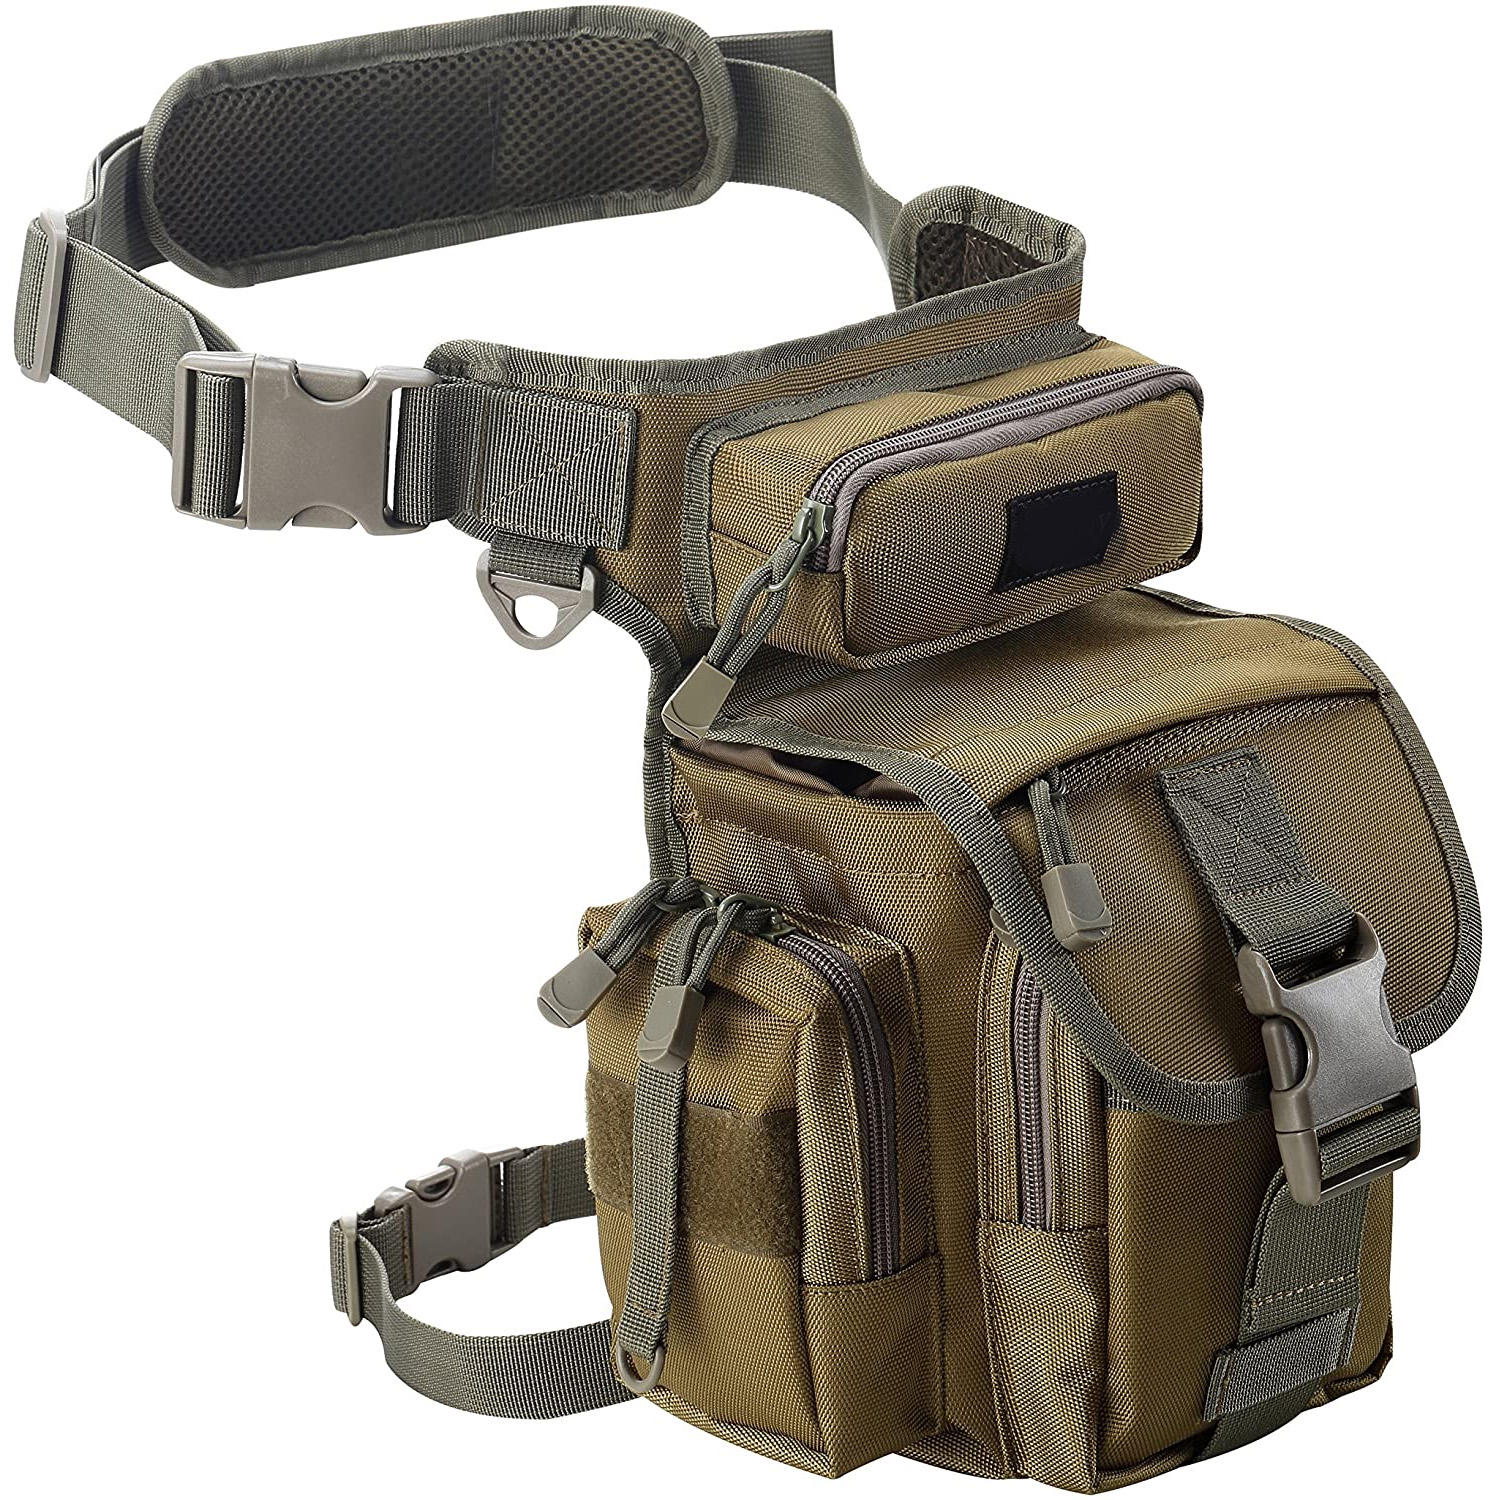 Tactical Military Thigh Hip Outdoor Pack for Motorcycling Hiking Traveling Fishing Tool Pouch Multifunctional Drop Leg Waist Bag